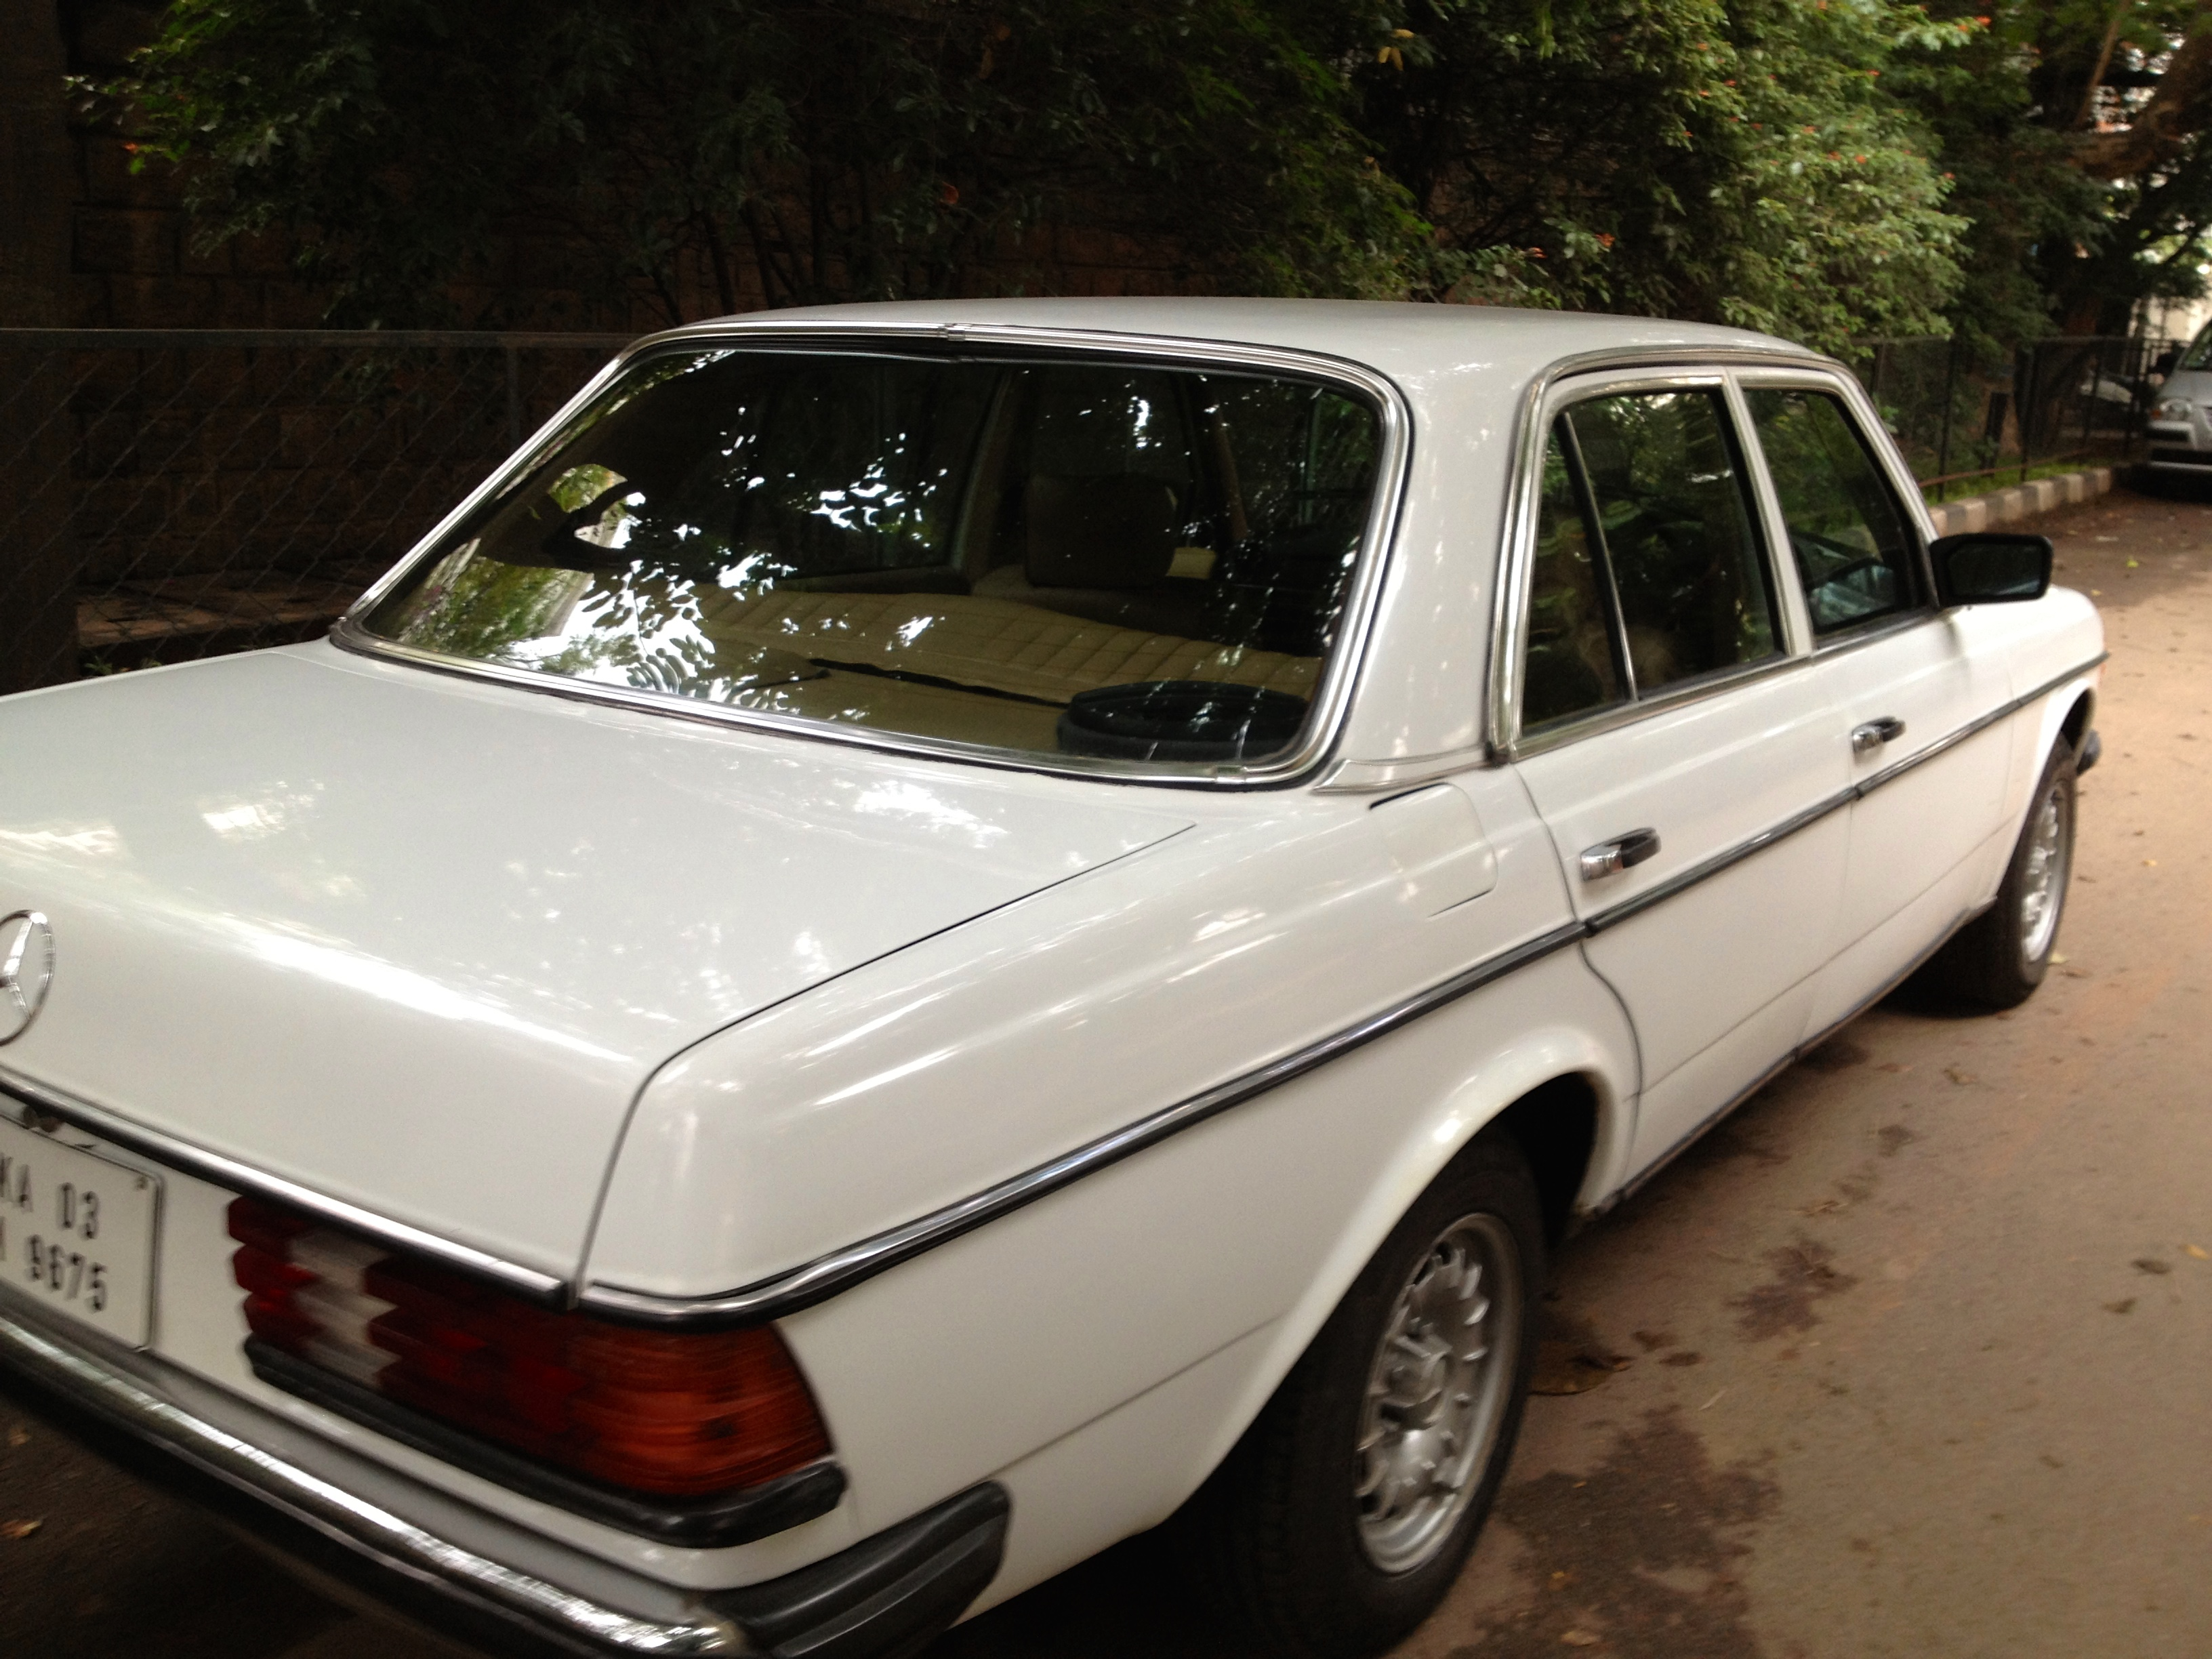 Review Of My 1980 Mercedes Benz W123 240d